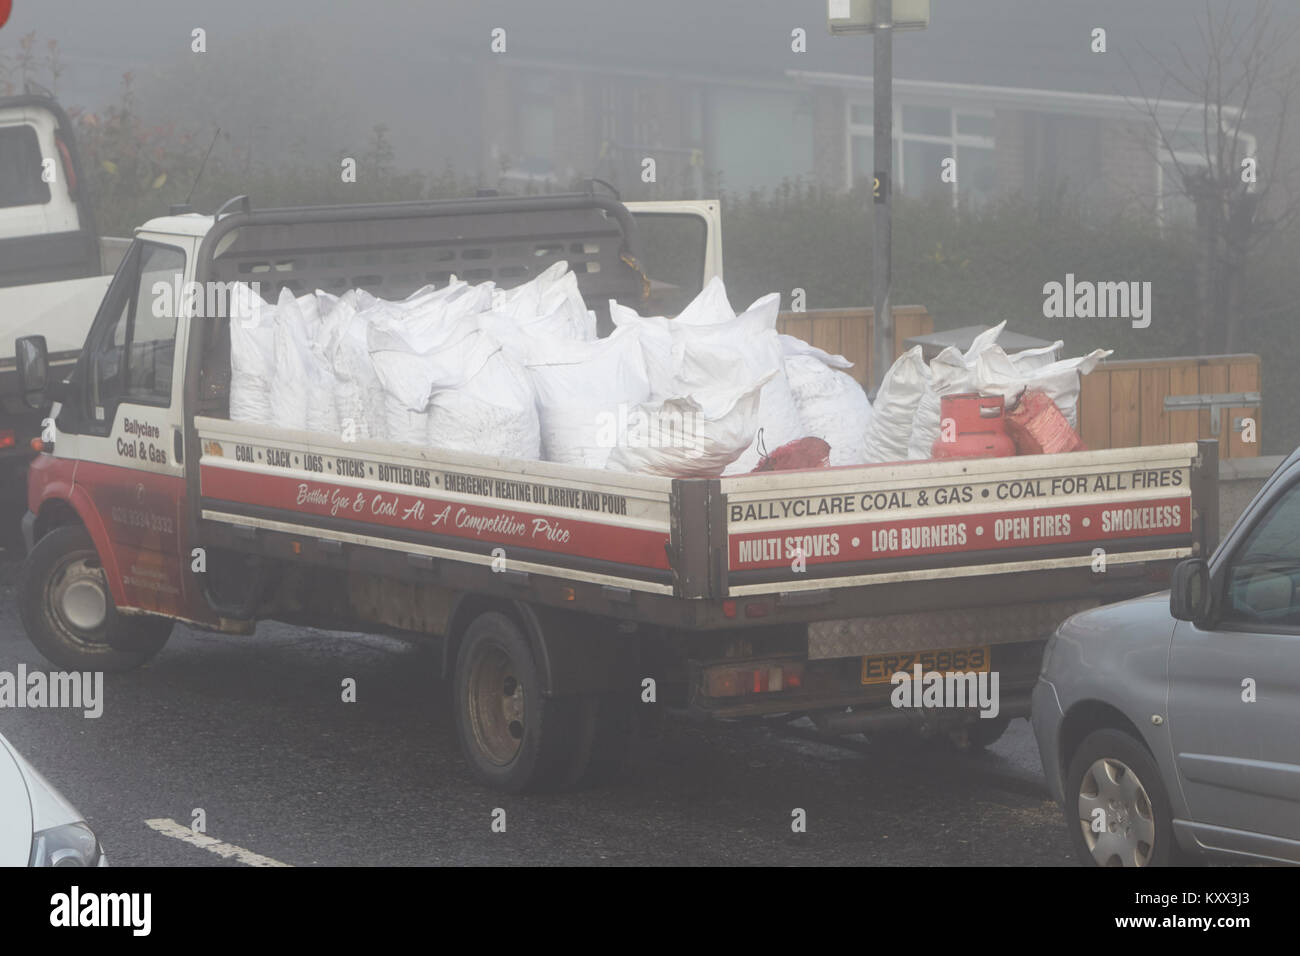 van delivering coal and solid fuel on a foggy day in the uk - Stock Image